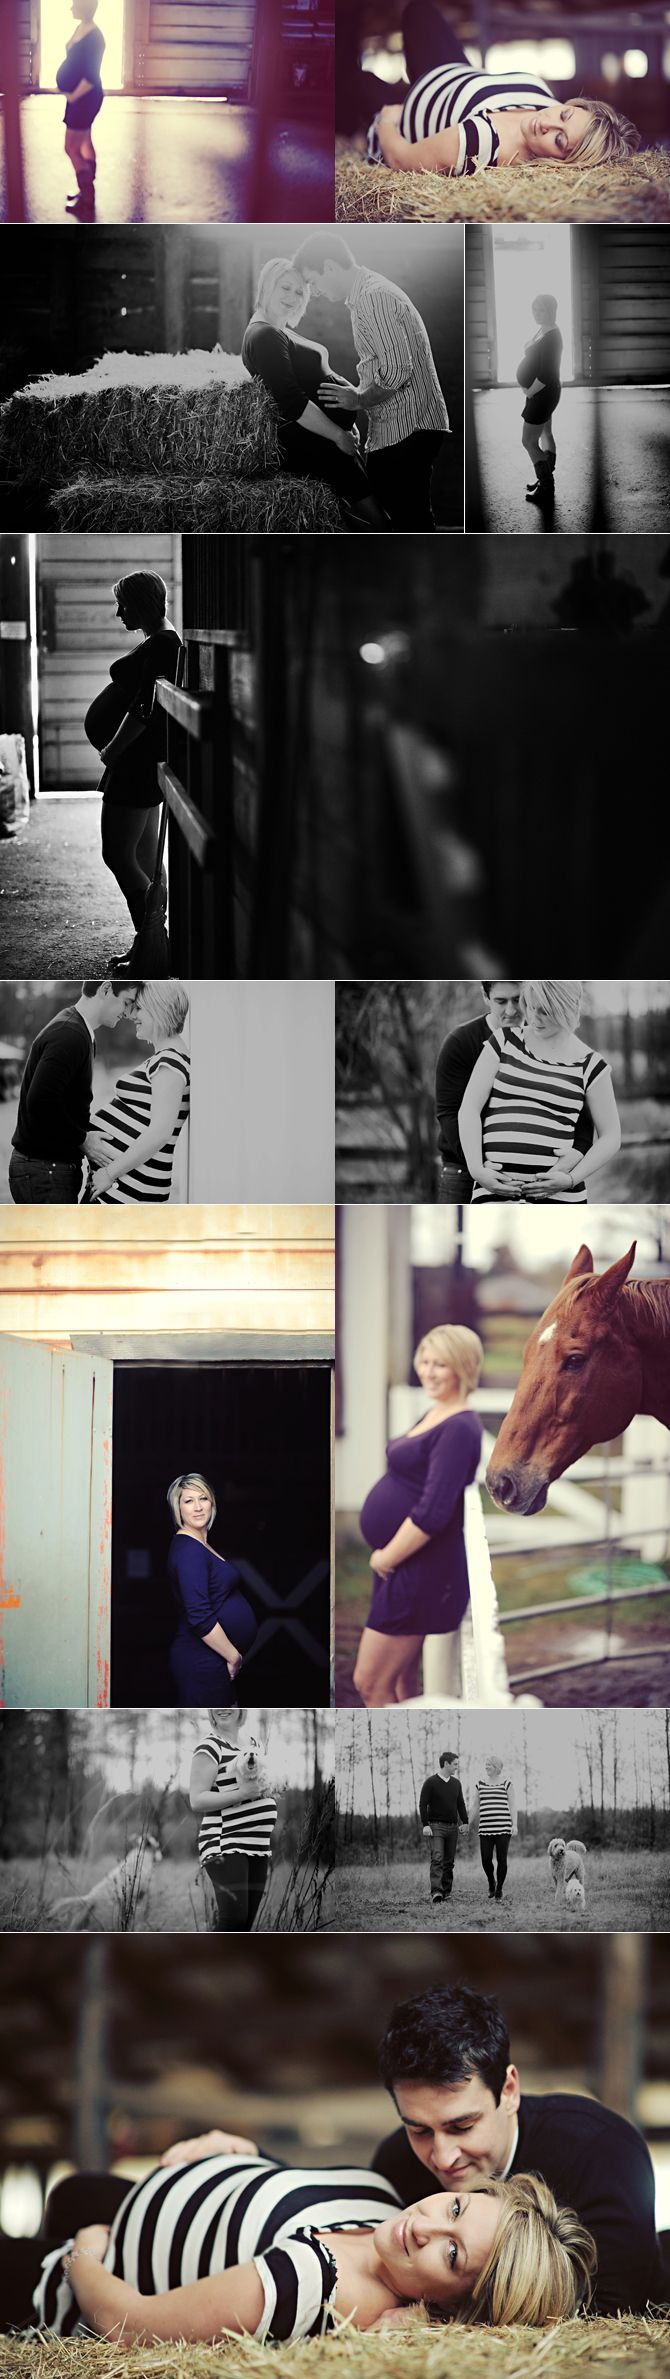 Cute country maternity picture ideas (: